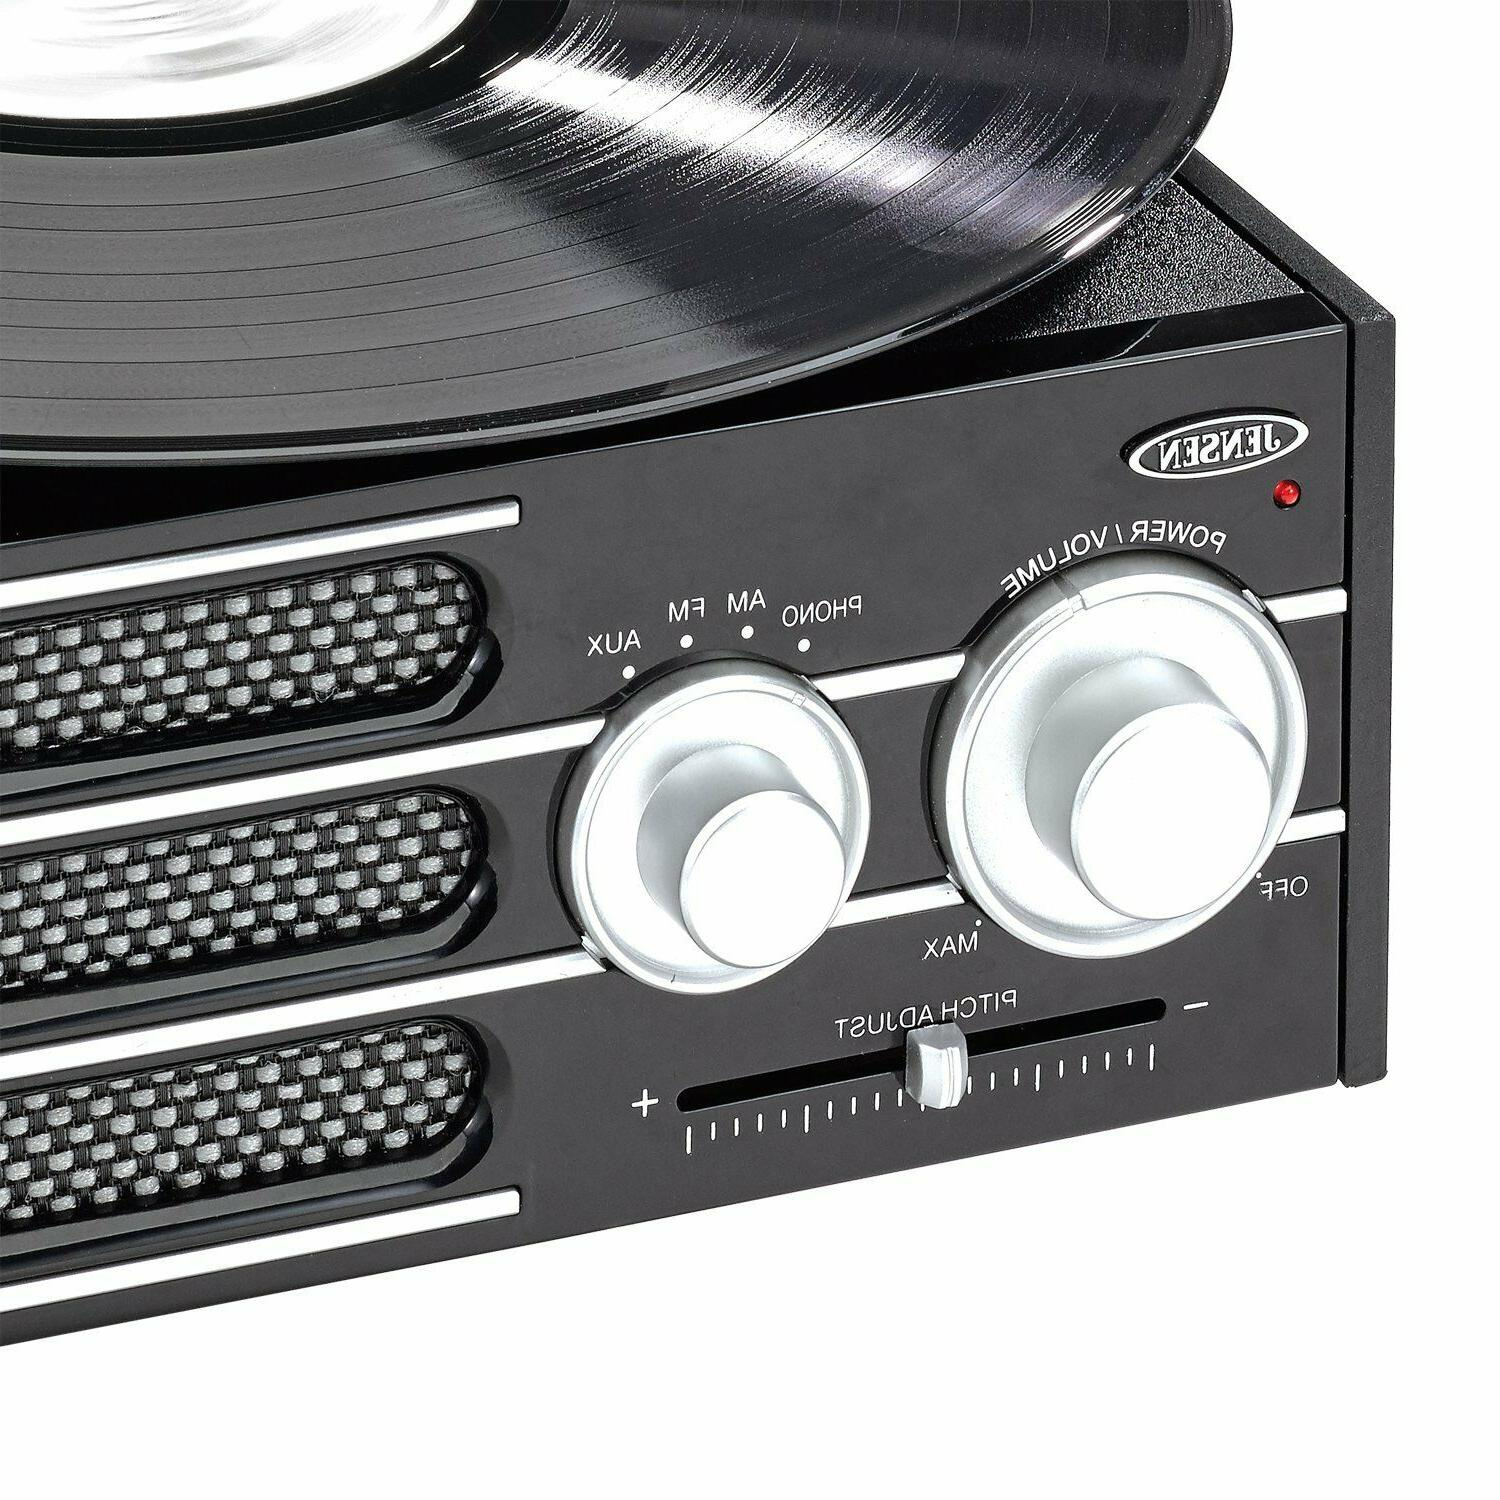 NEW Jensen 3-Speed Player Turntable RCA Software